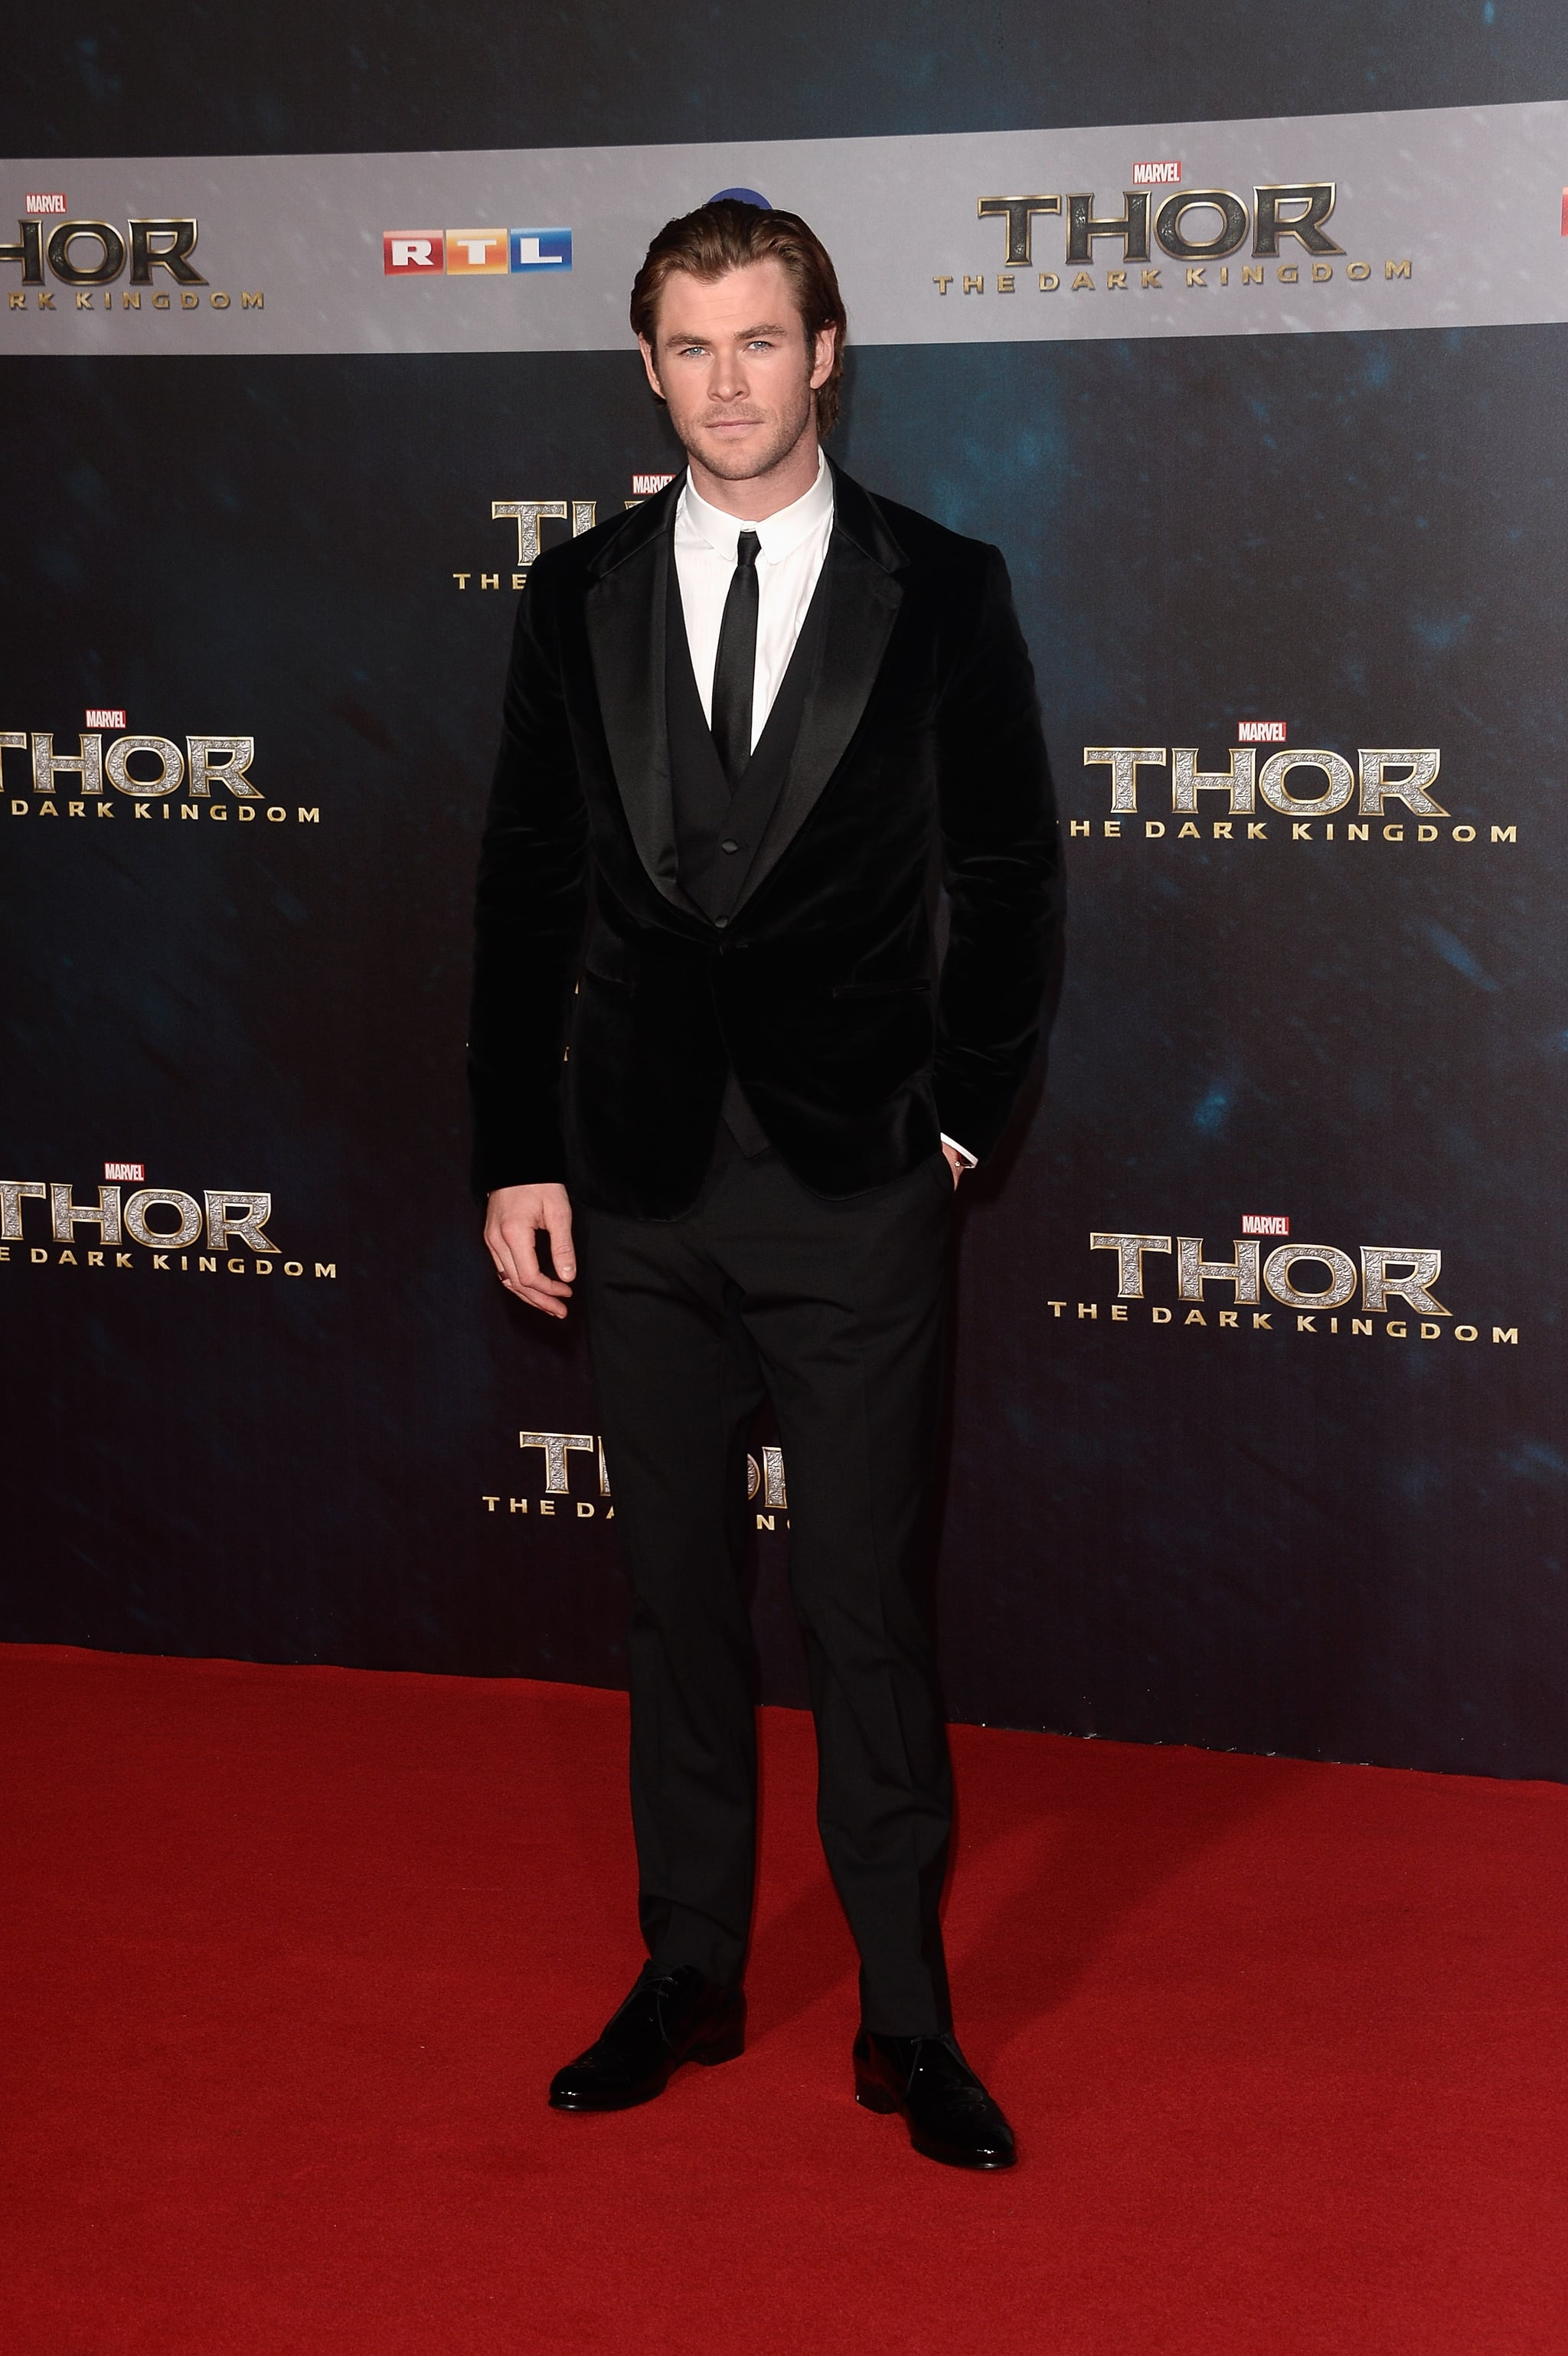 Chris Hemsworth looked dapper at the German premiere of Thor: The Dark World.